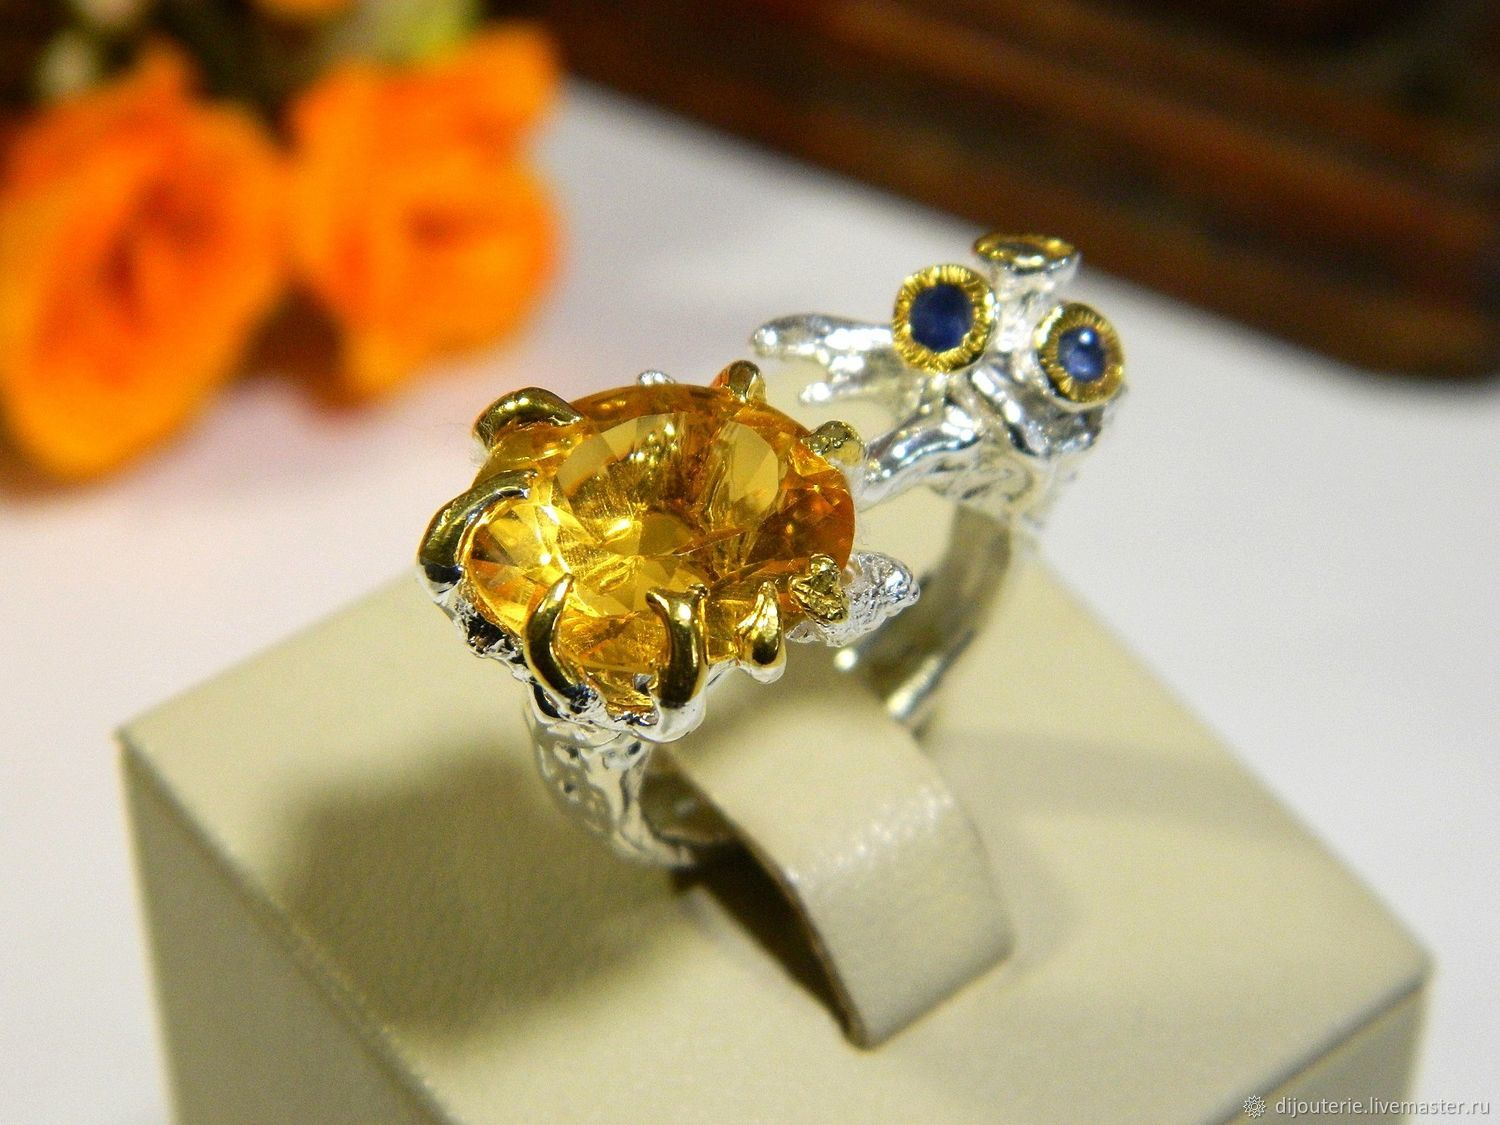 Chic Citrine! Ring with Citrine, Sapphires. Silver ring, Rings, Saratov,  Фото №1